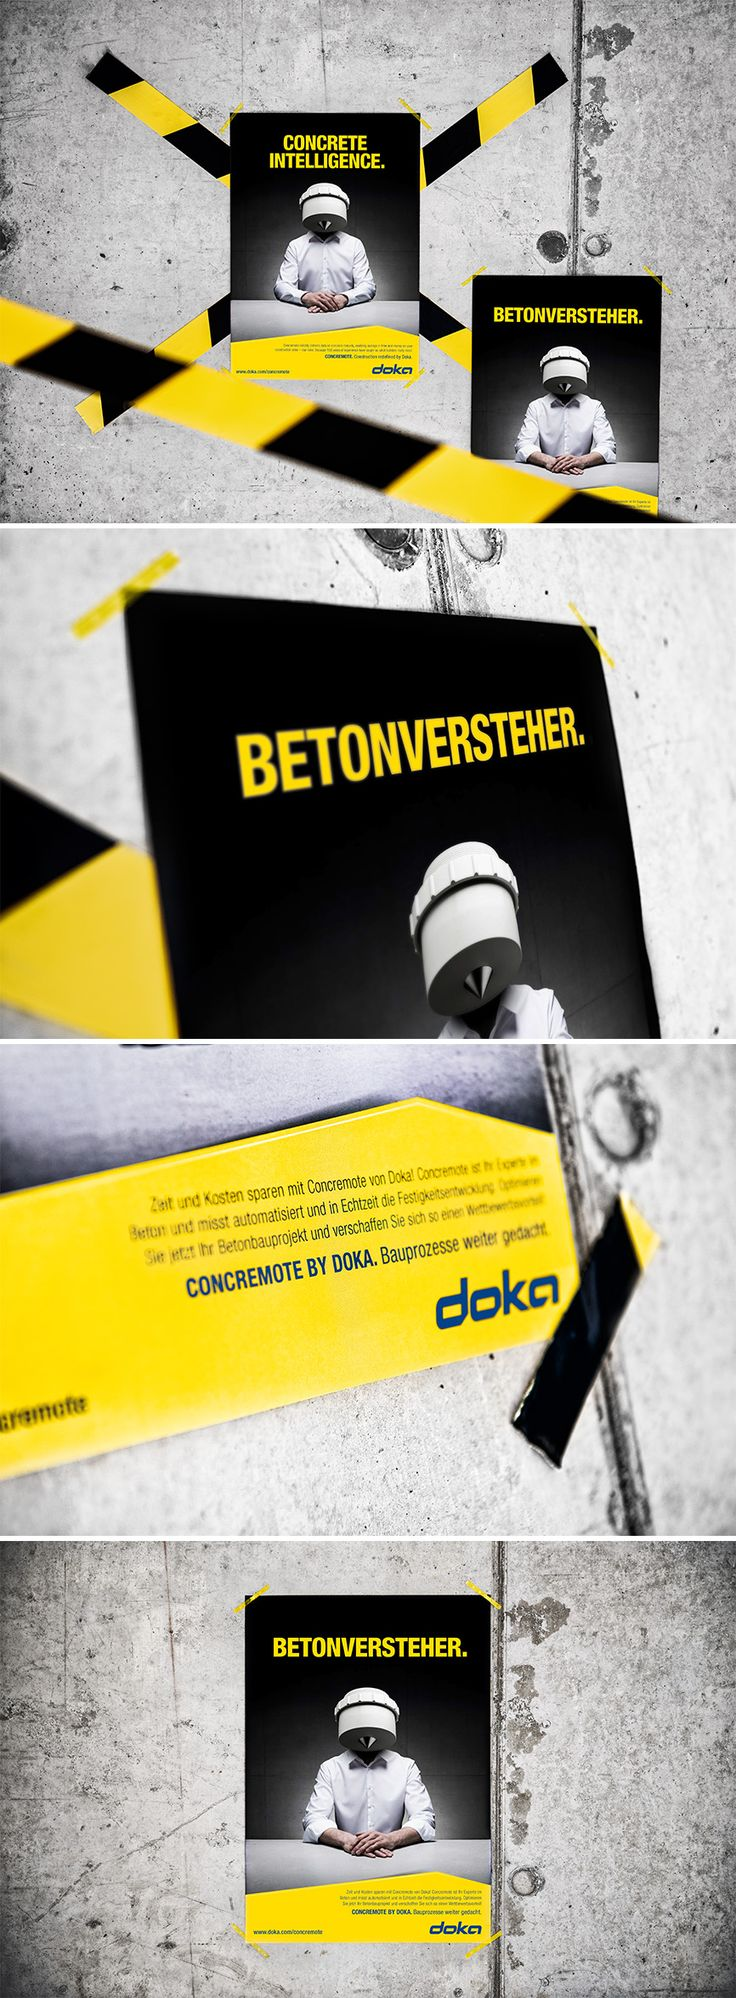 DOKA // Concremote by www.lunik2.com #concremote #design #marketing #befirst